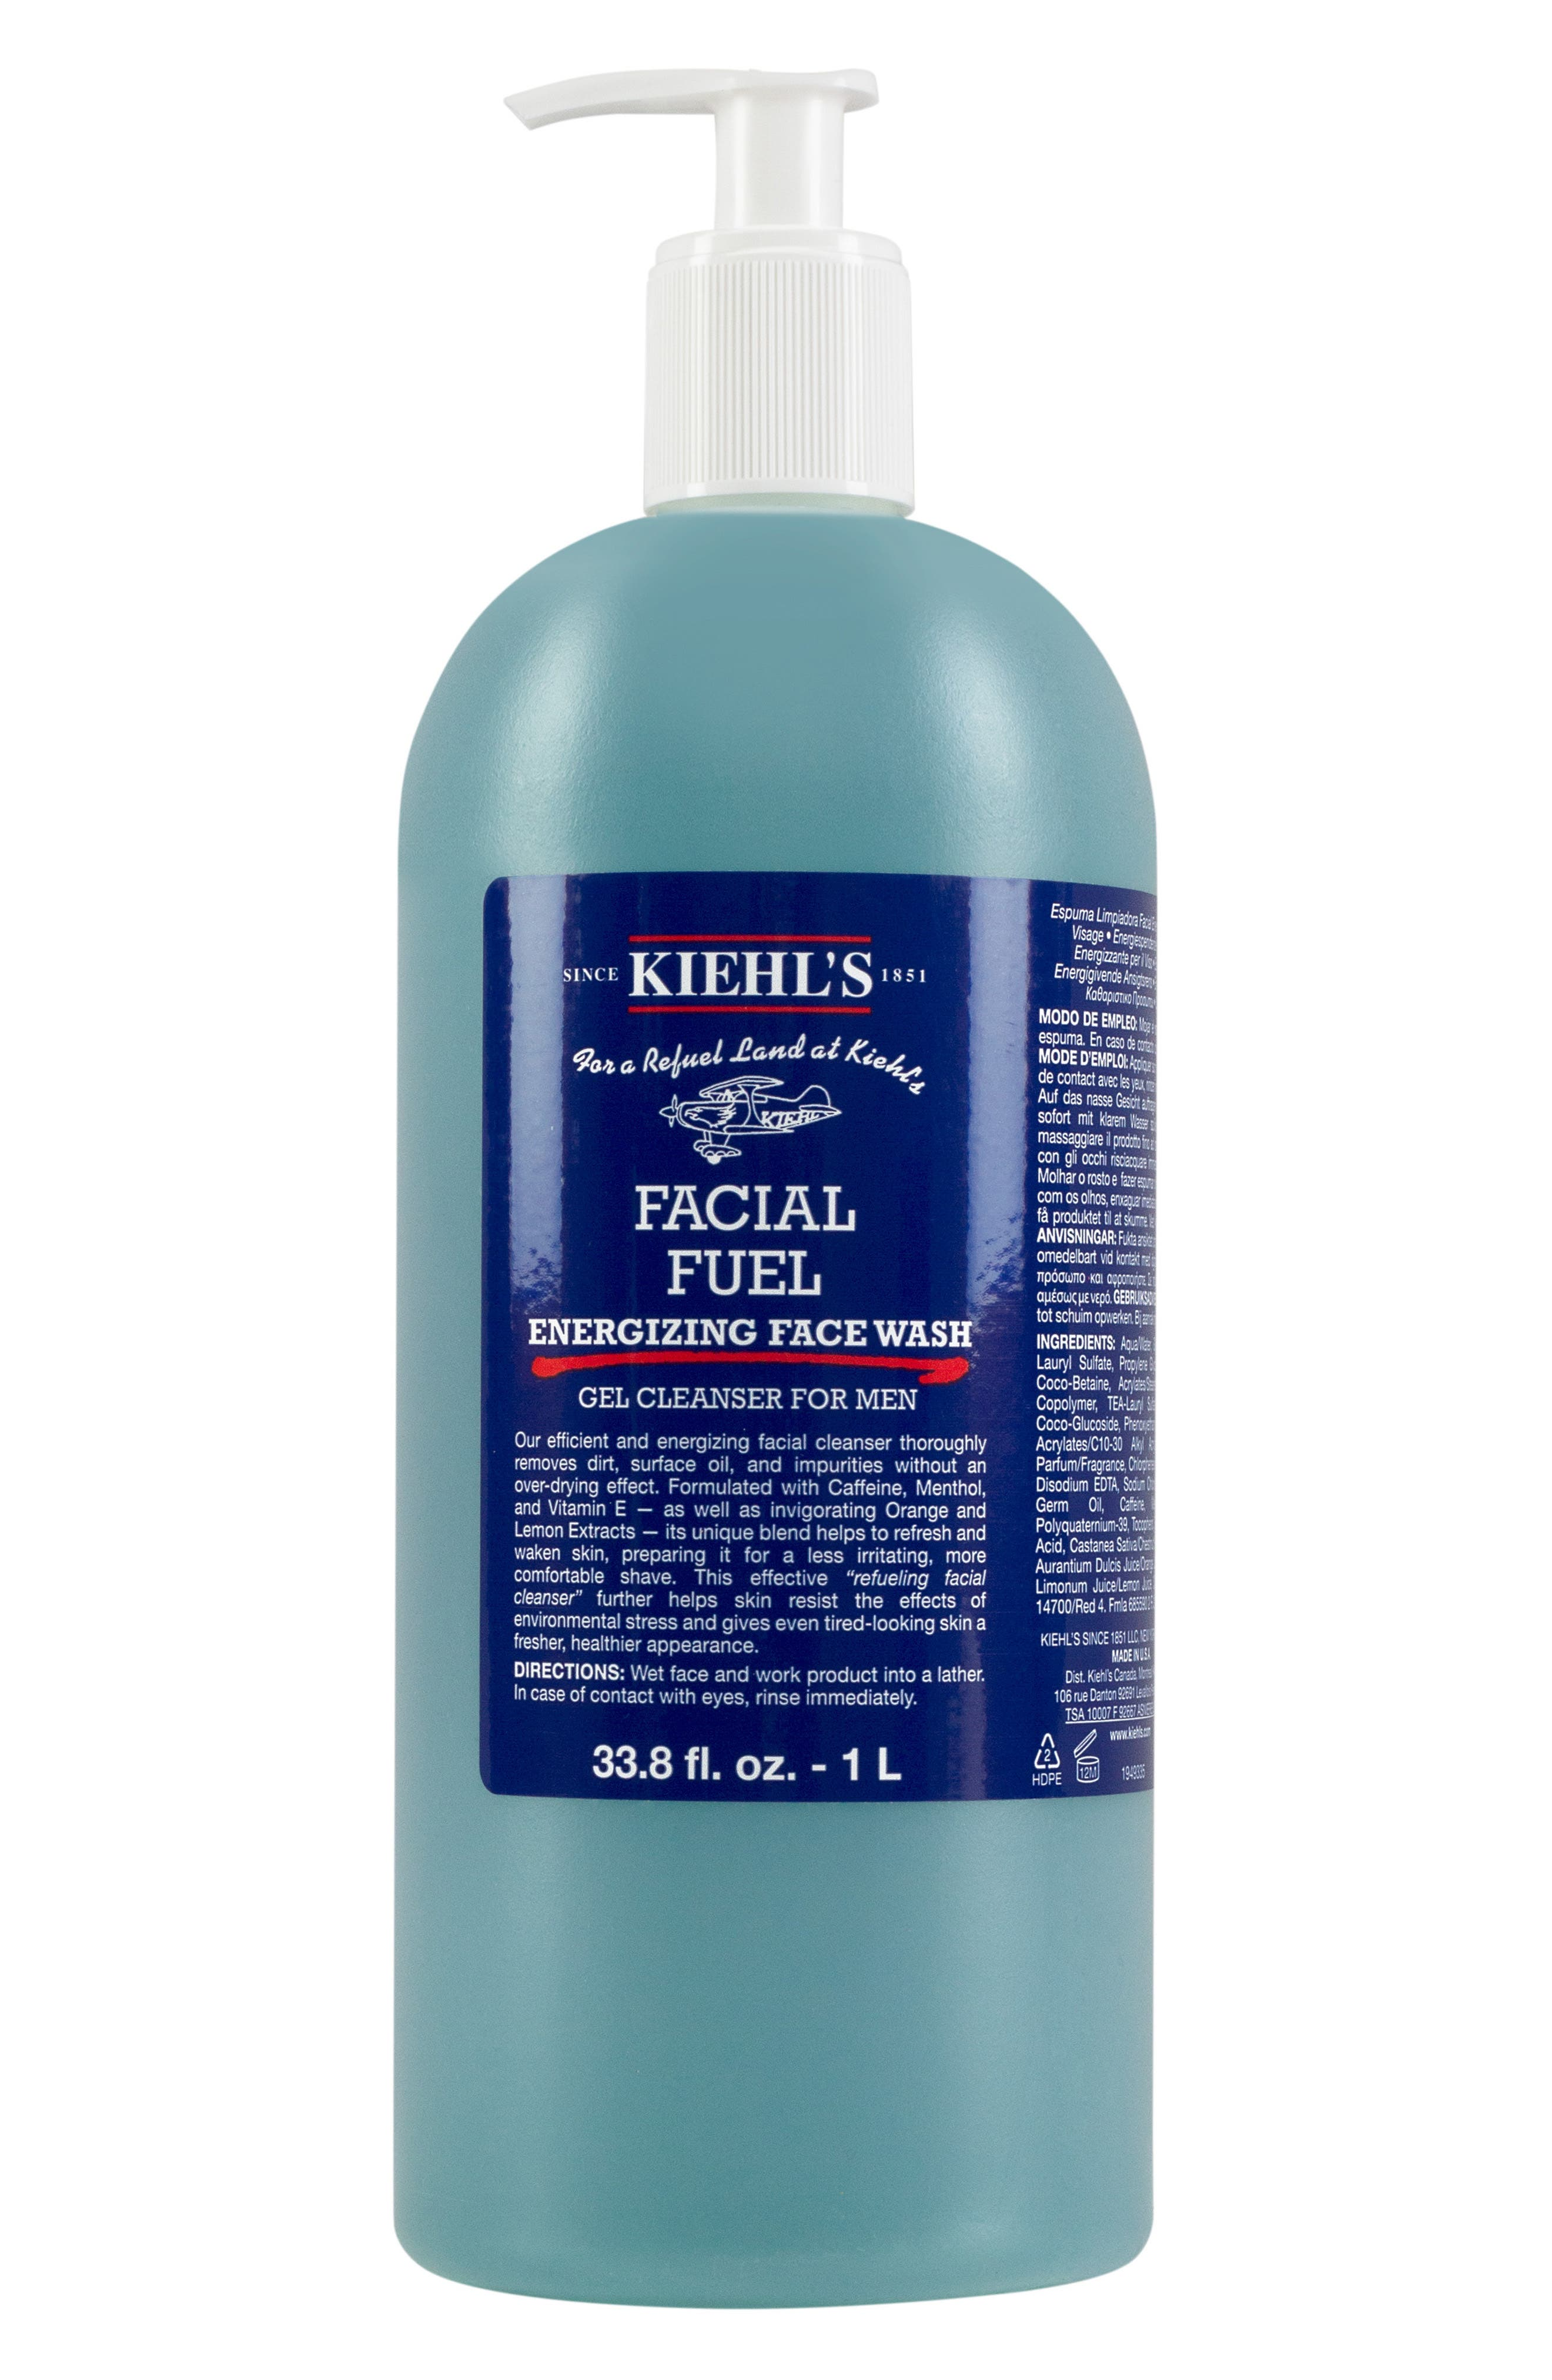 KIEHL'S SINCE 1851, Jumbo Facial Fuel Energizing Face Wash, Alternate thumbnail 4, color, NO COLOR